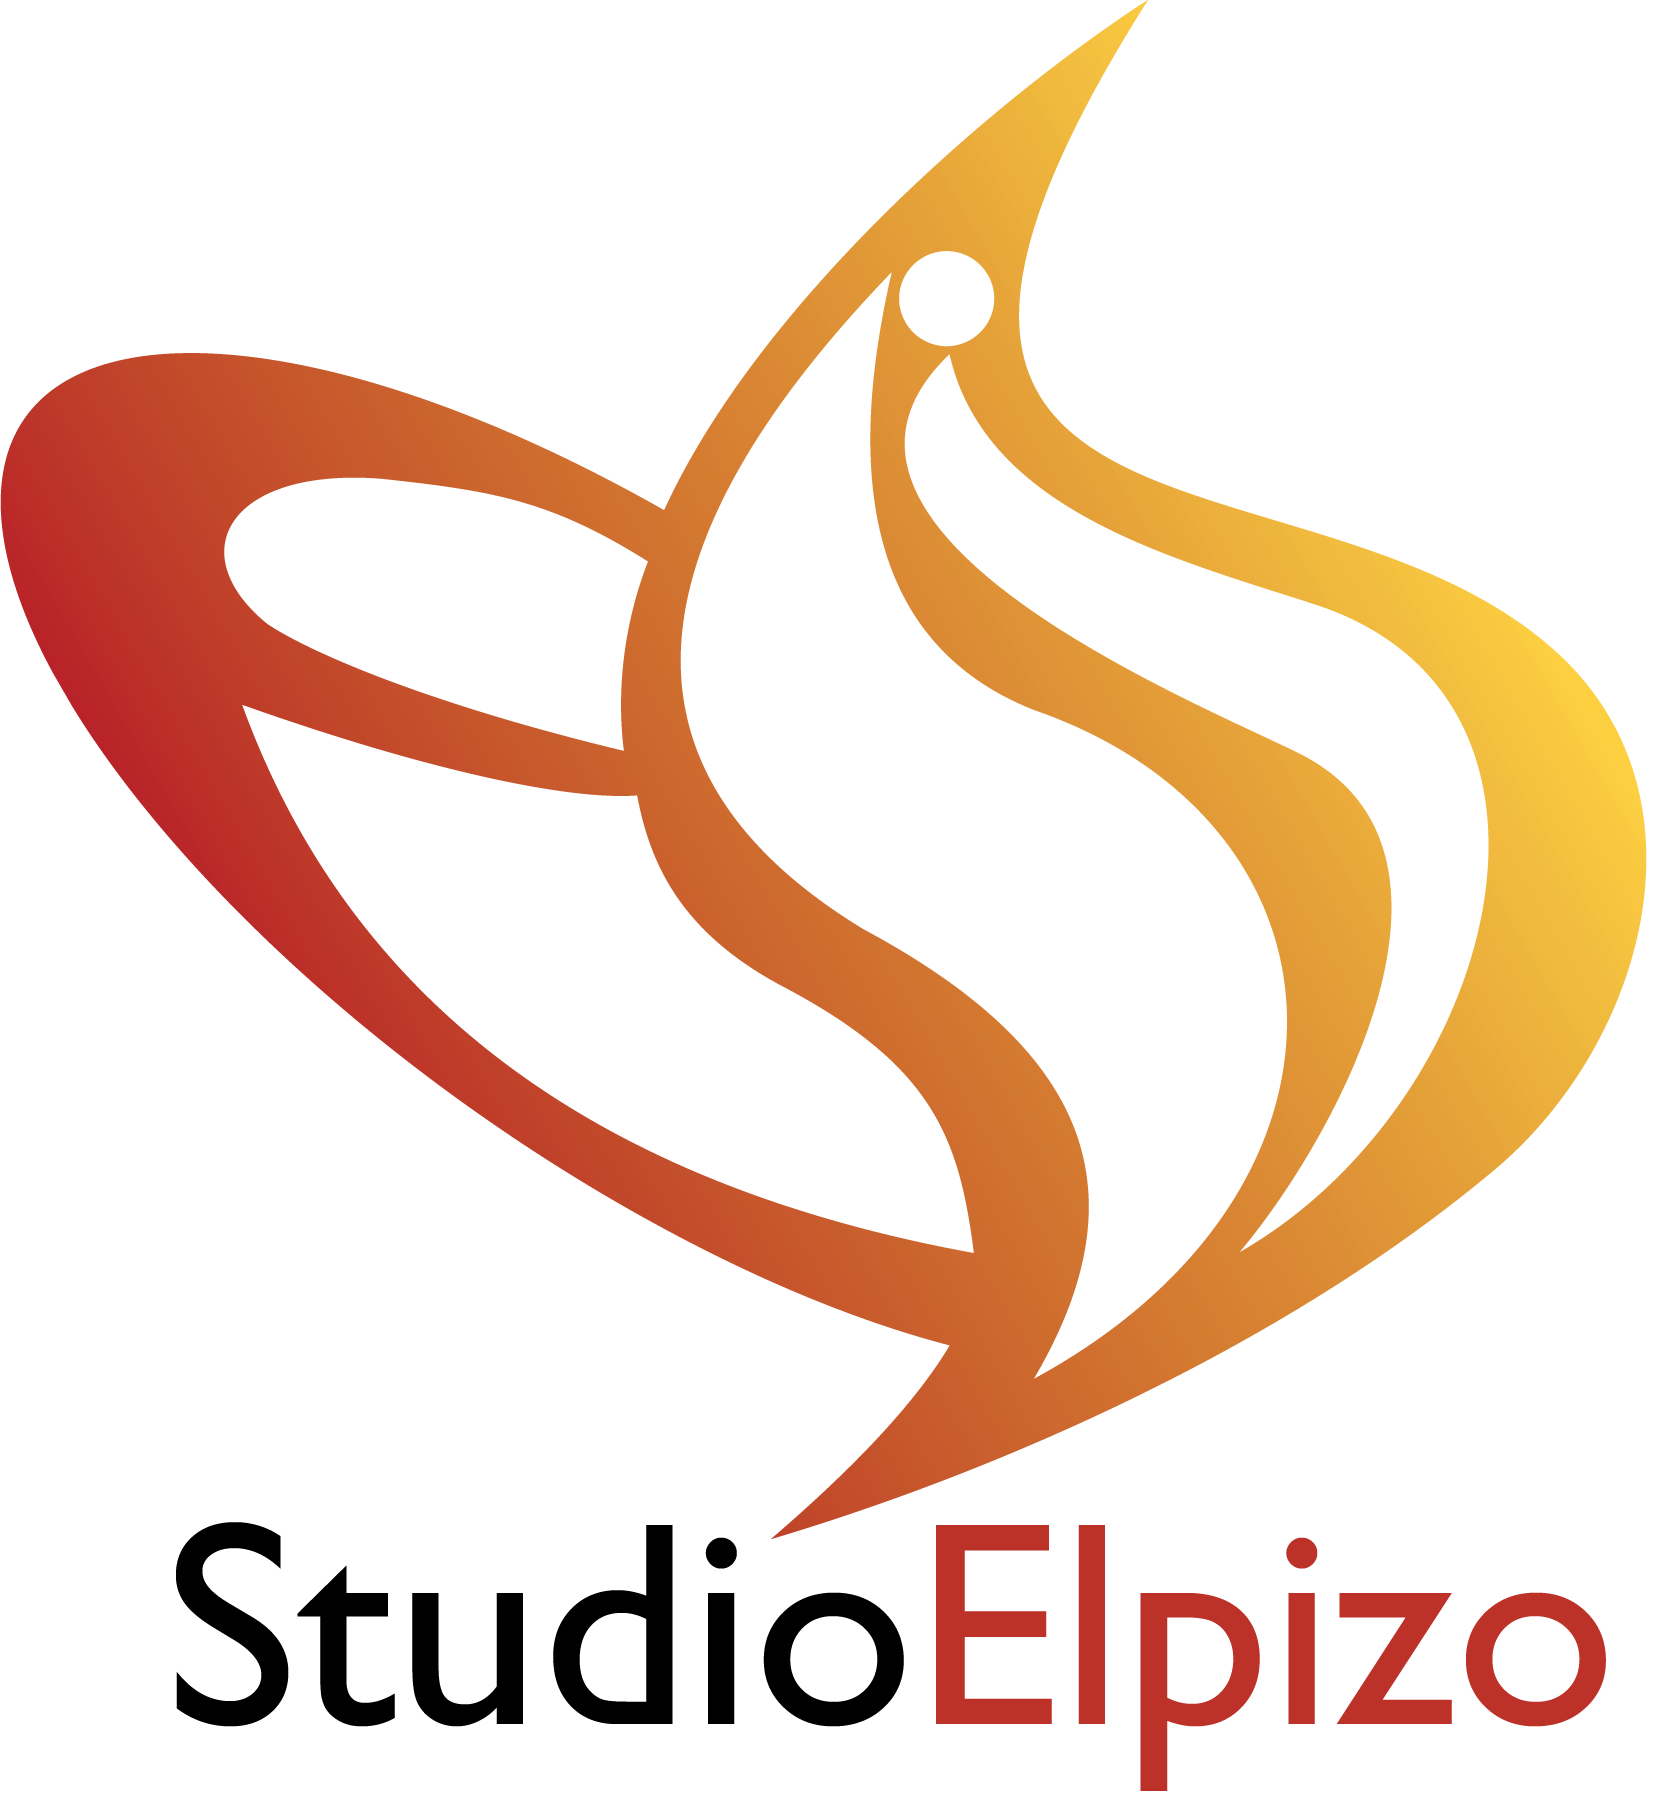 """Since its incorporation in April 1997, Studio Elpizo has aimed at echoing hope to the community through """"beautiful music and inspiring messages""""."""